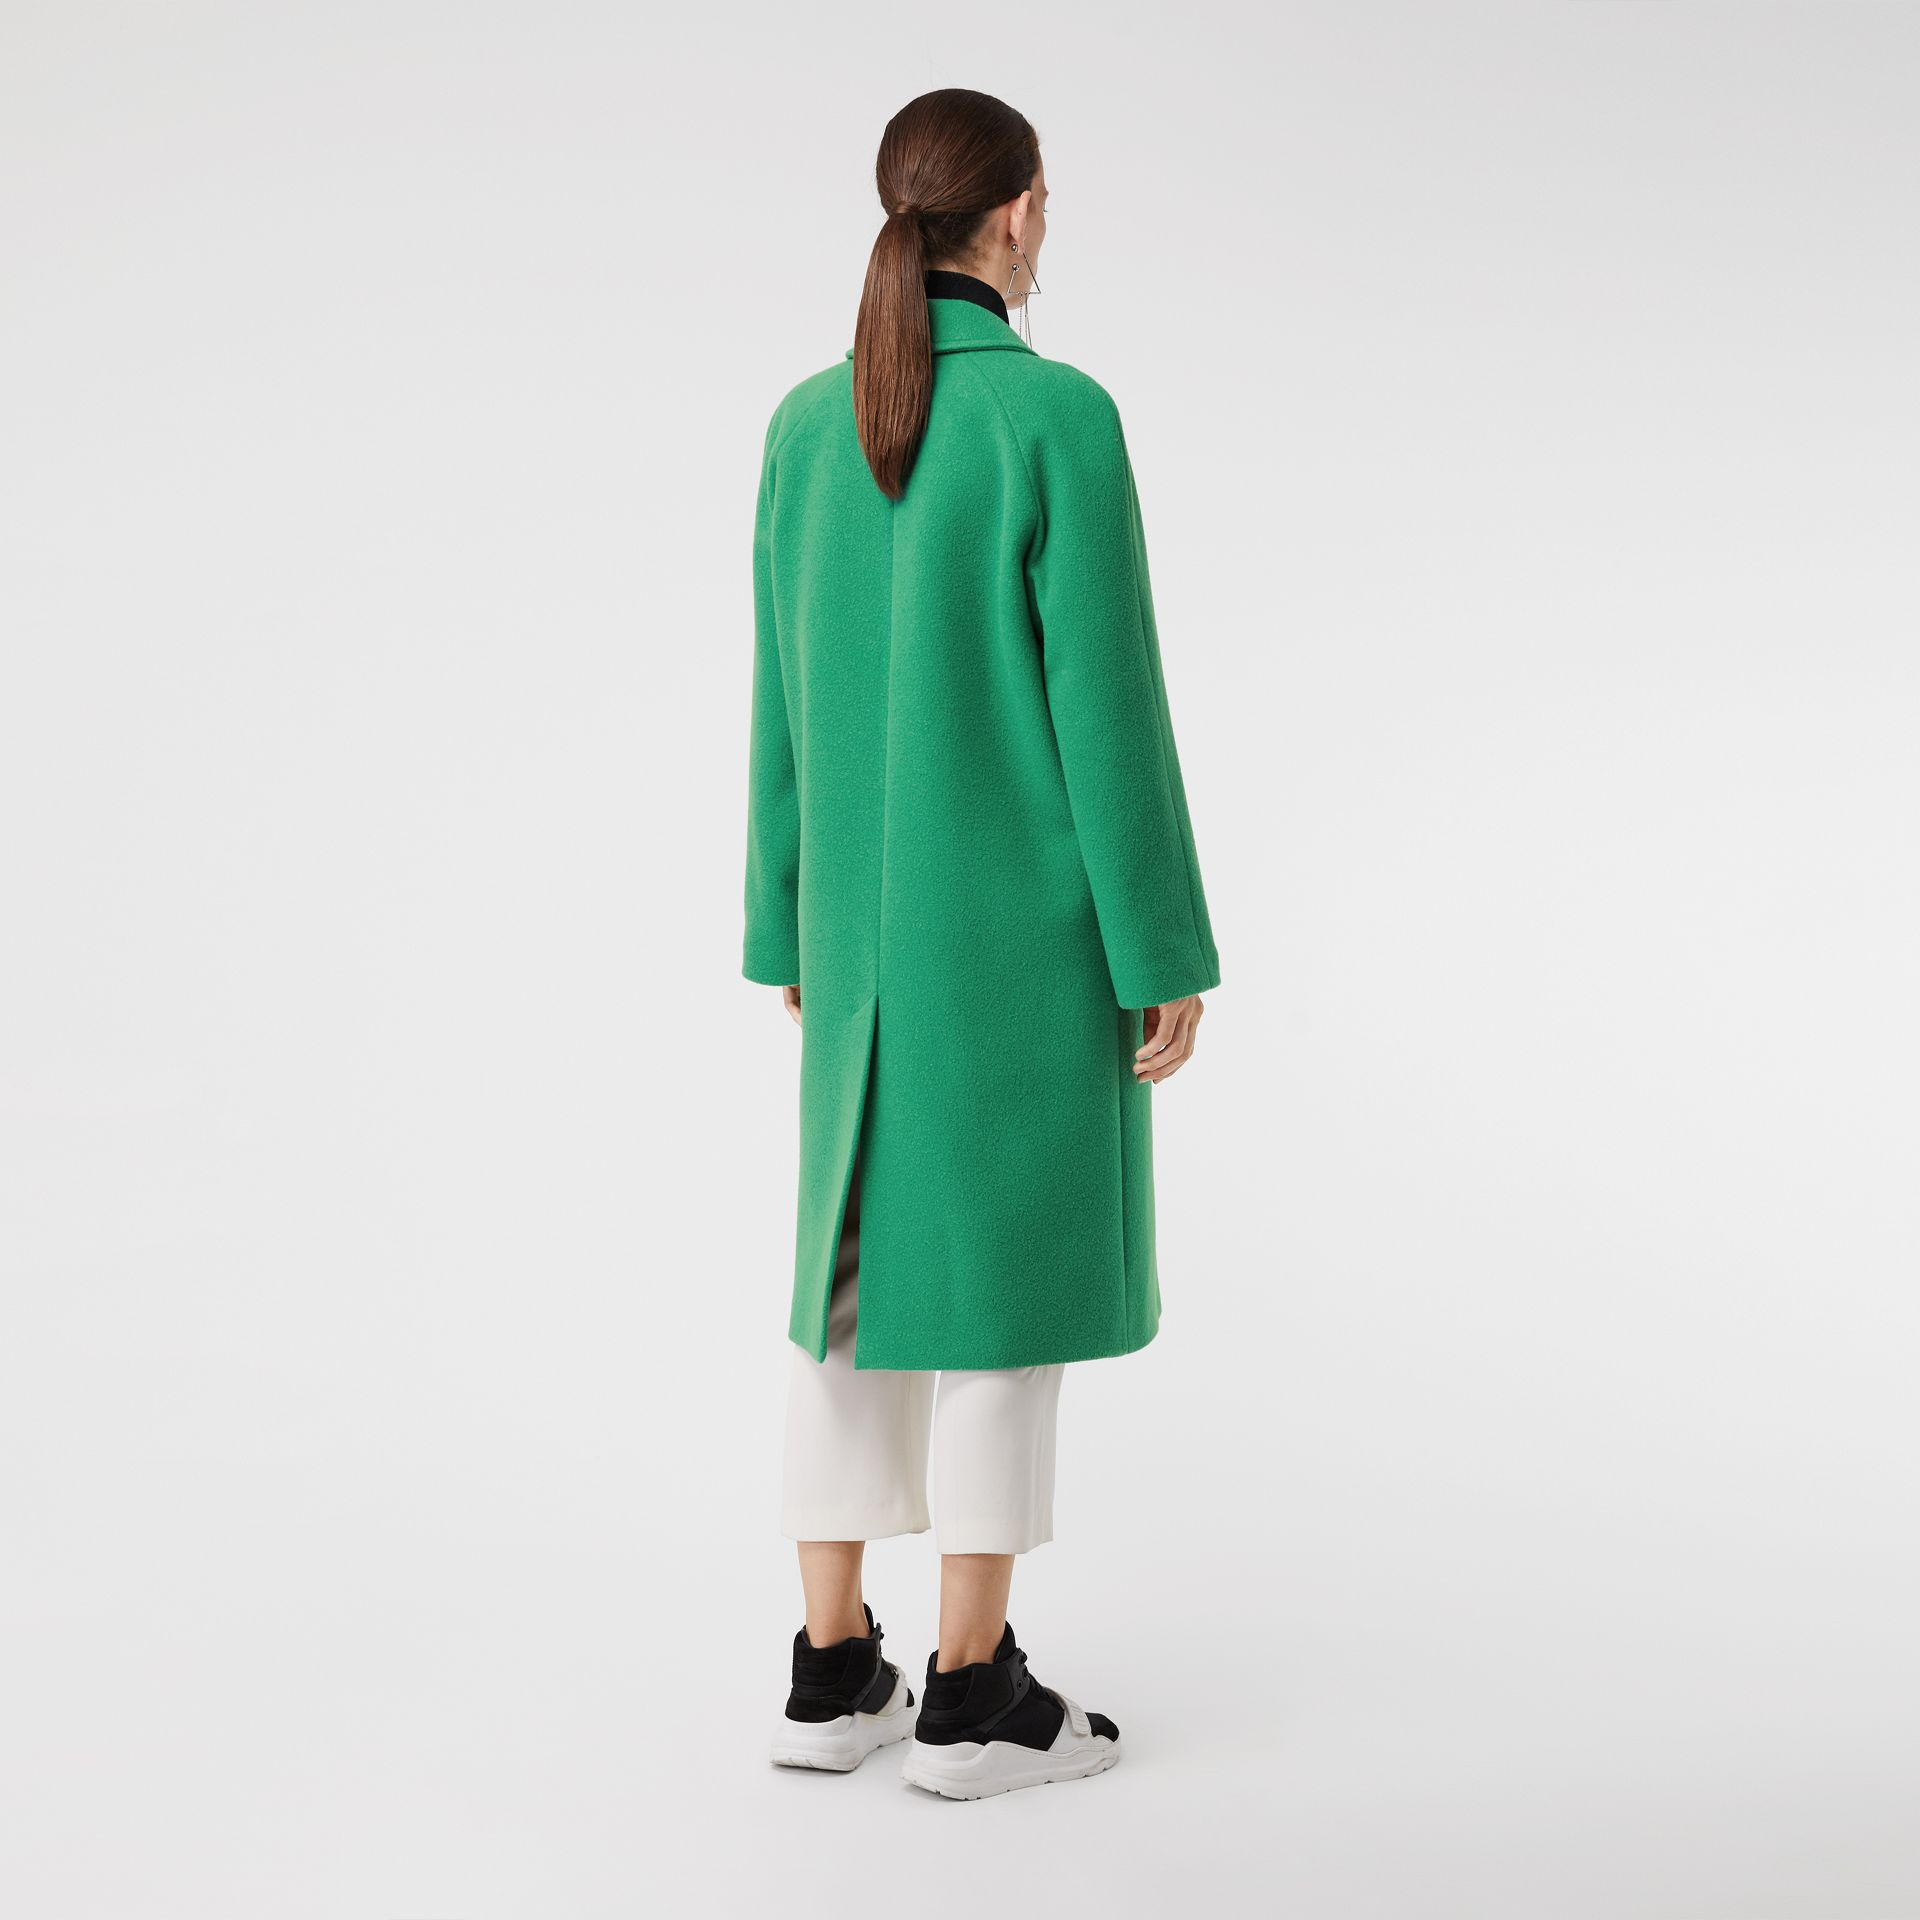 Wool Blend Tailored Coat in Bright Green - Women | Burberry United Kingdom - gallery image 2